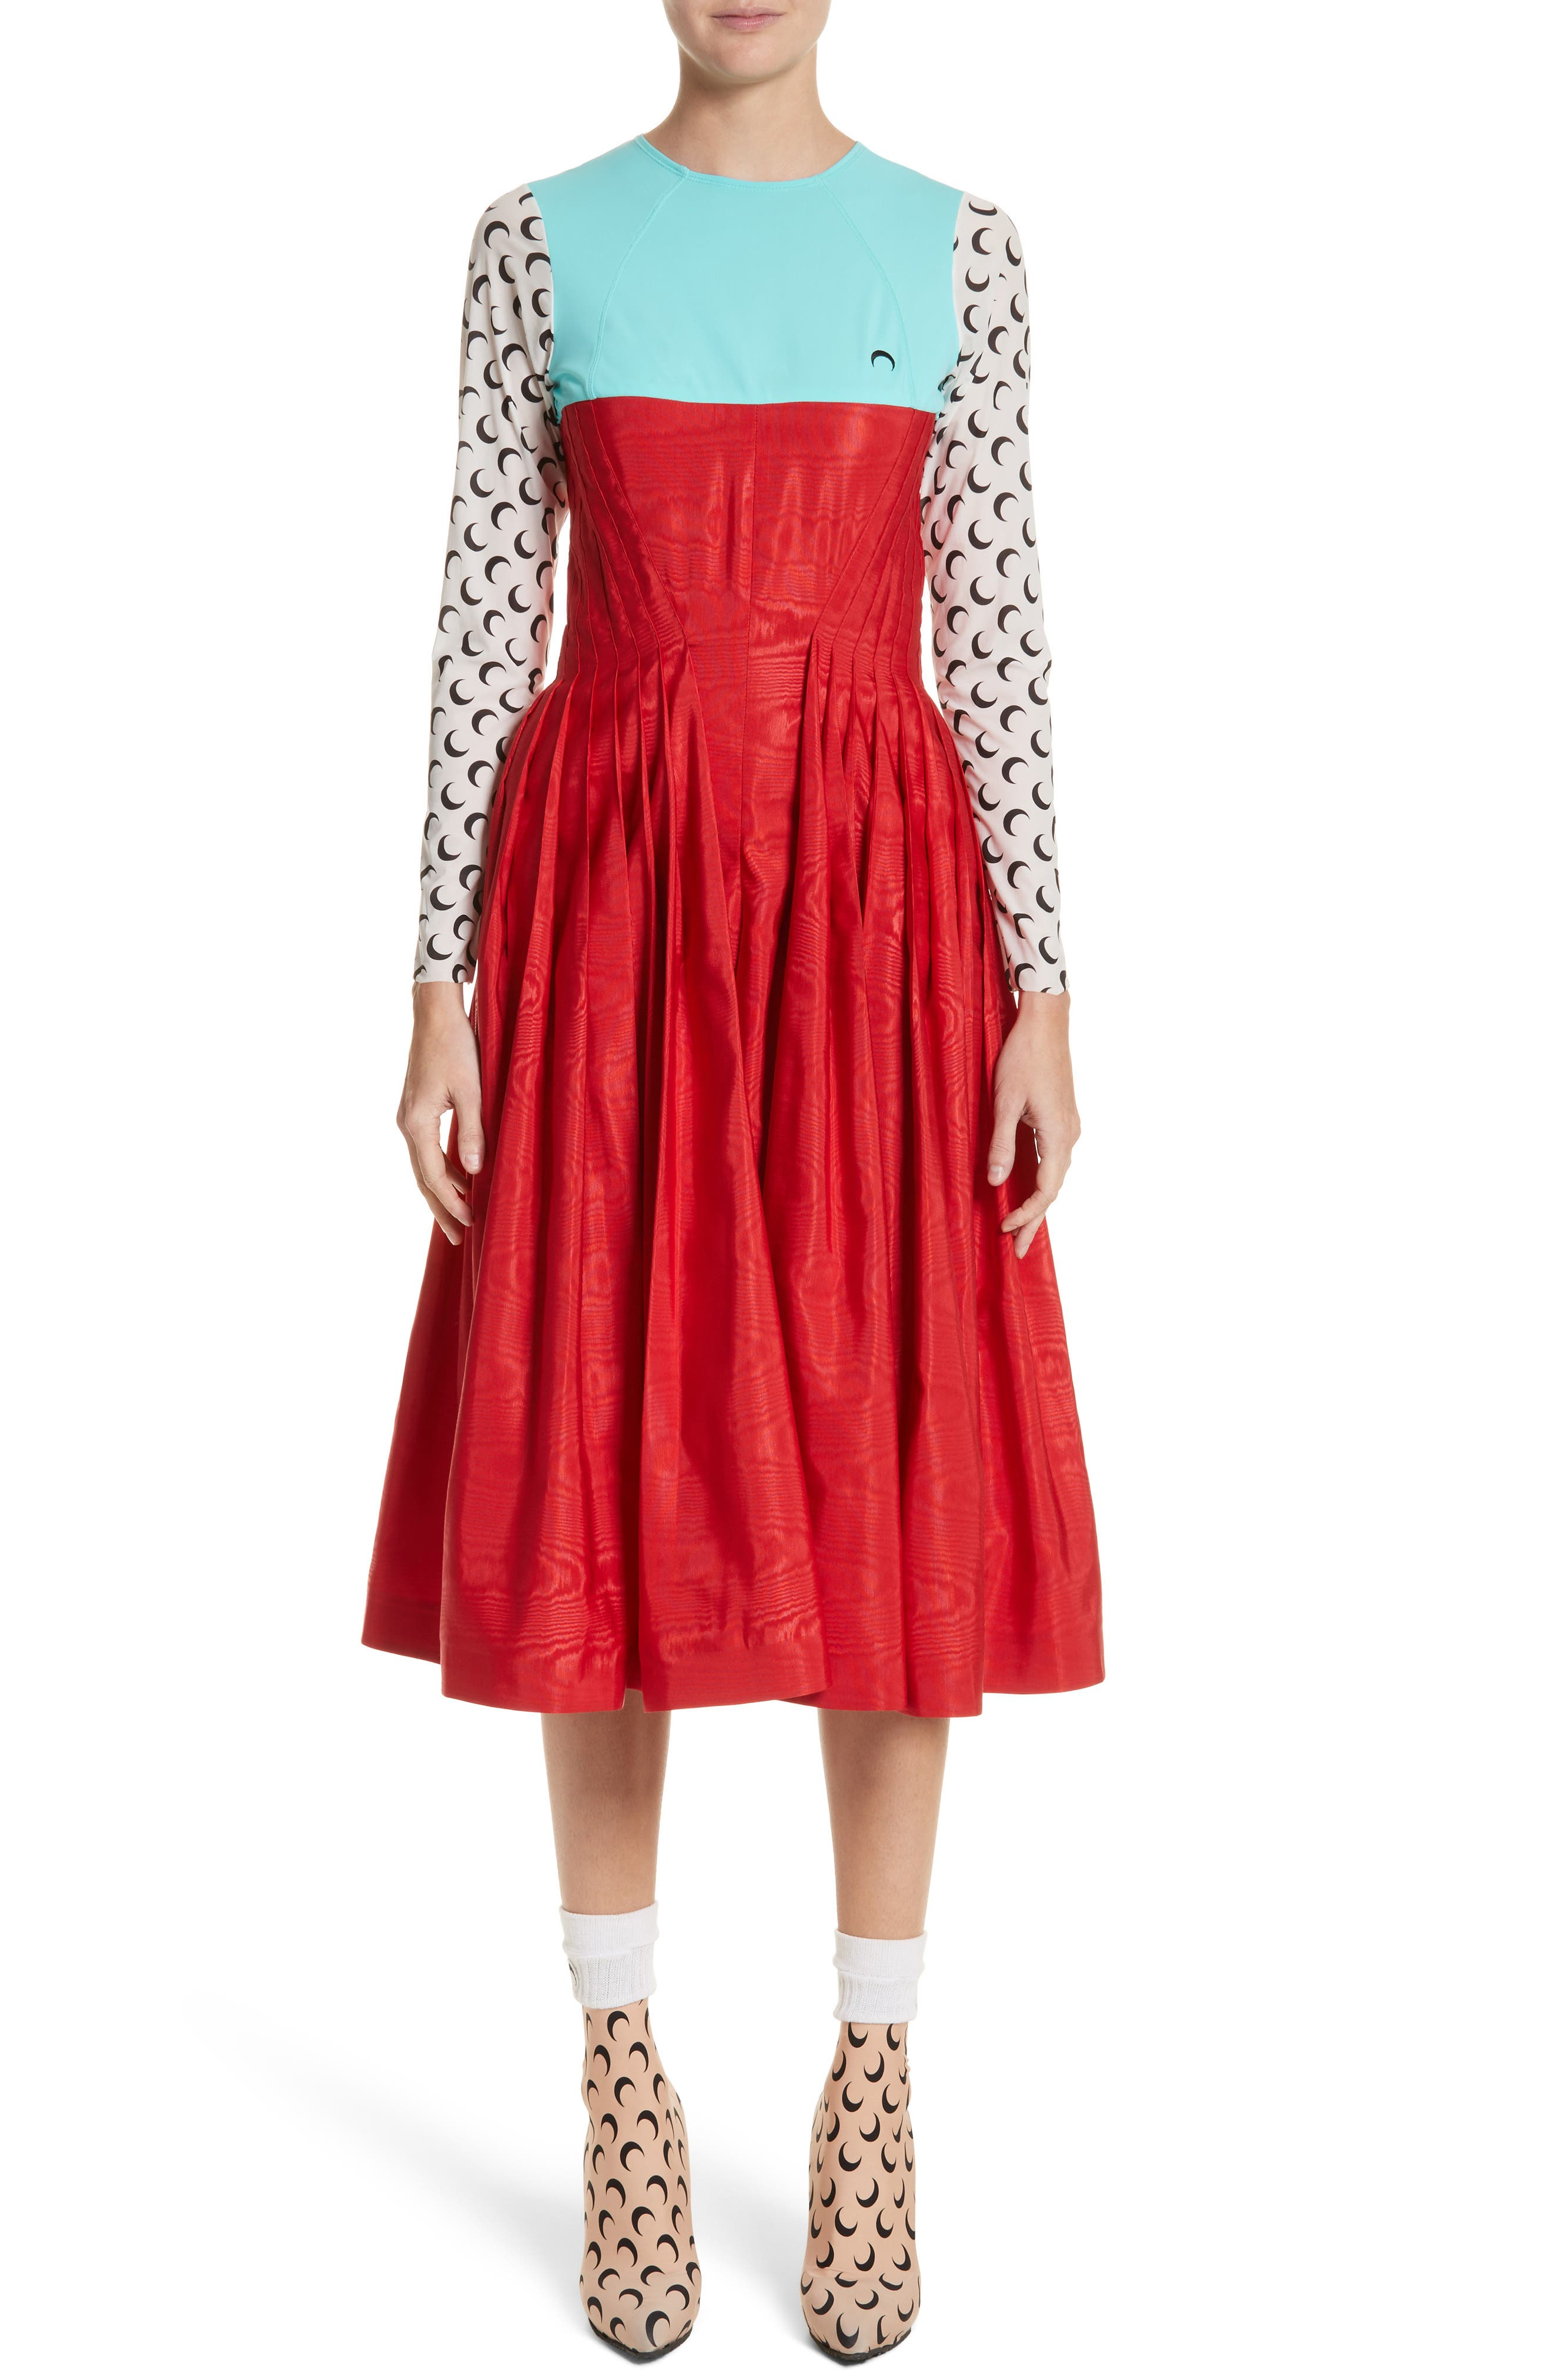 Hybrid Moiré Dress,                         Main,                         color, Turquoise/ Red